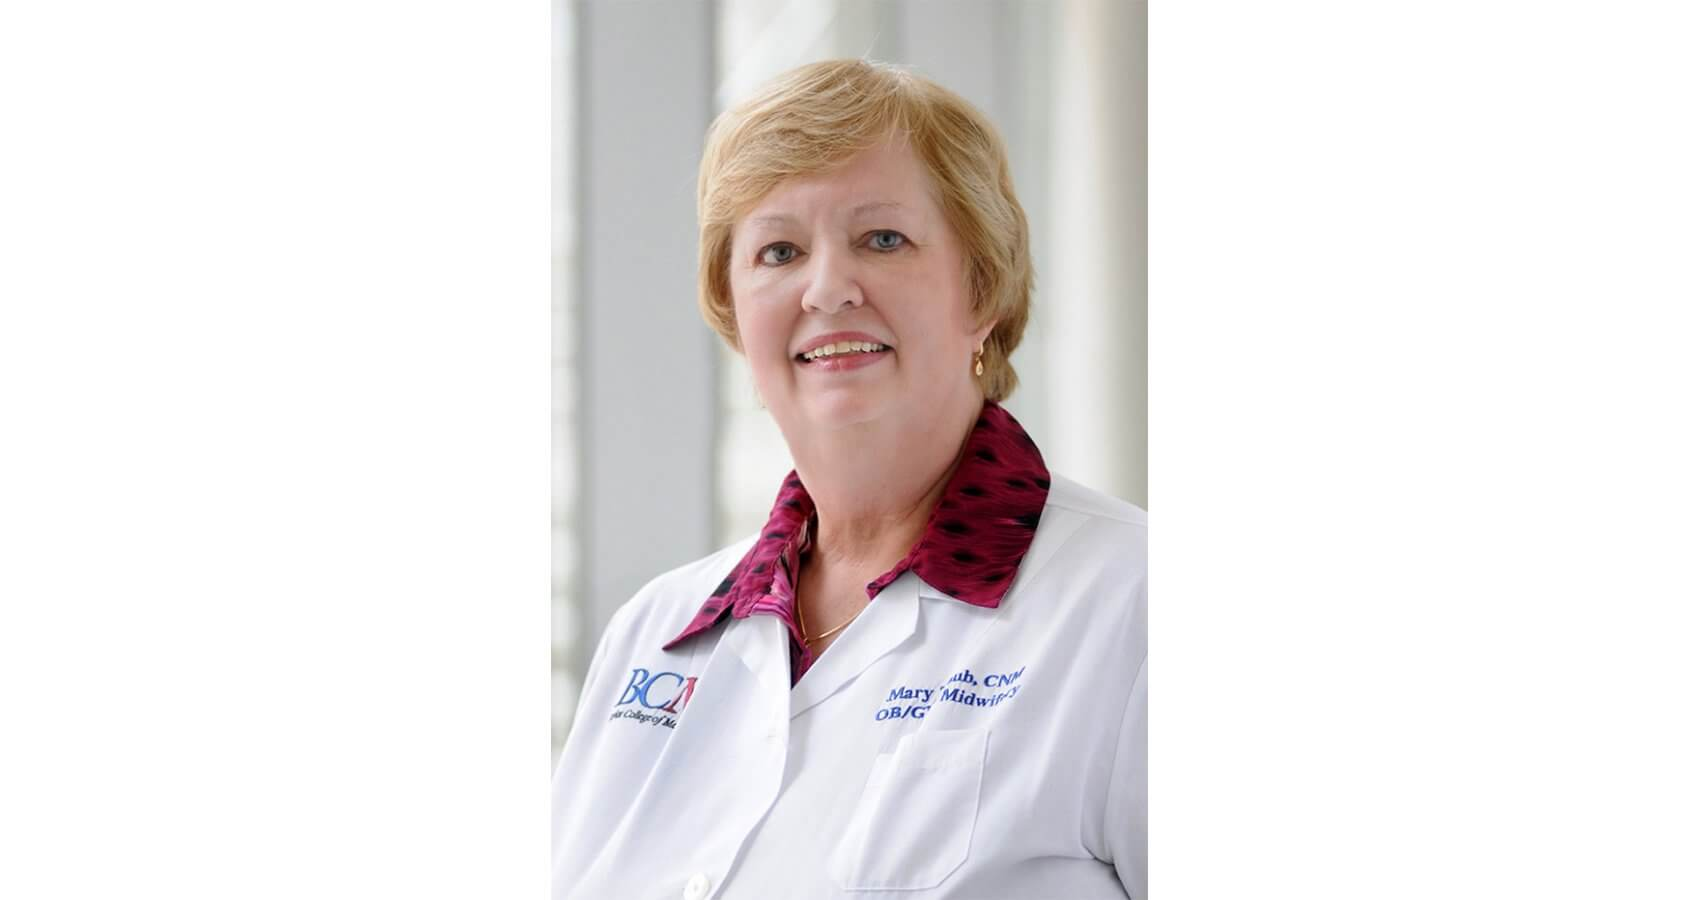 Mary Traub, director of the Midwifery Section at Ben Taub Hospital, advanced practice registered nurse and certified nurse-midwife.